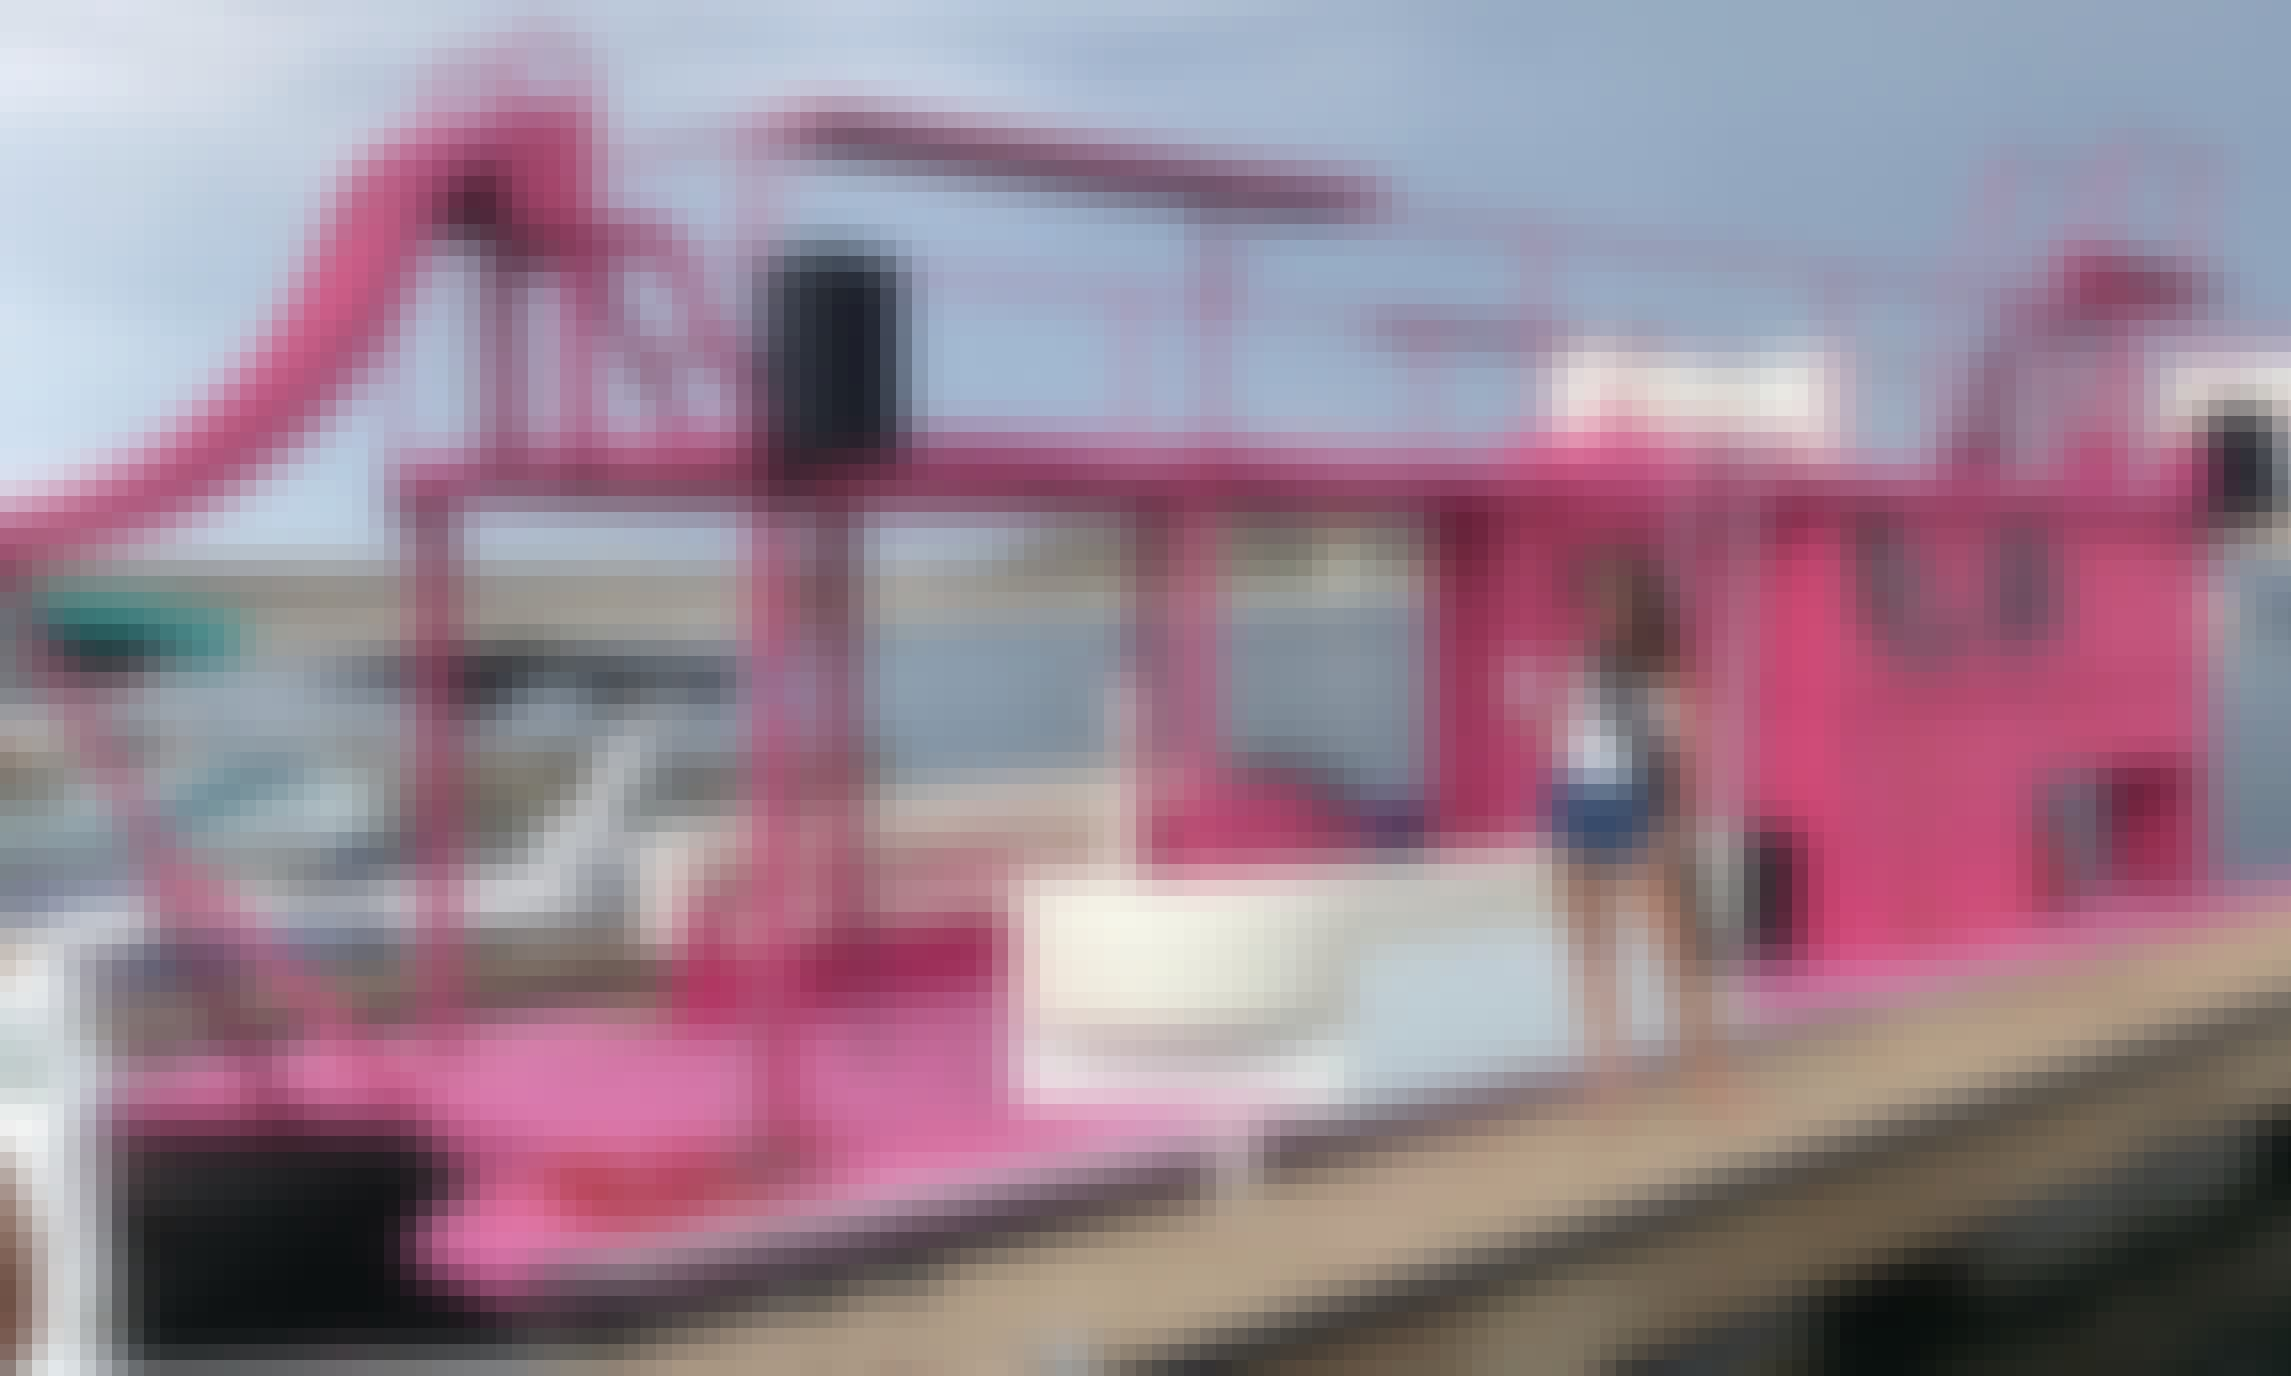 Incredible Pink Party Barge for 20 People in Peoria, Arizona.